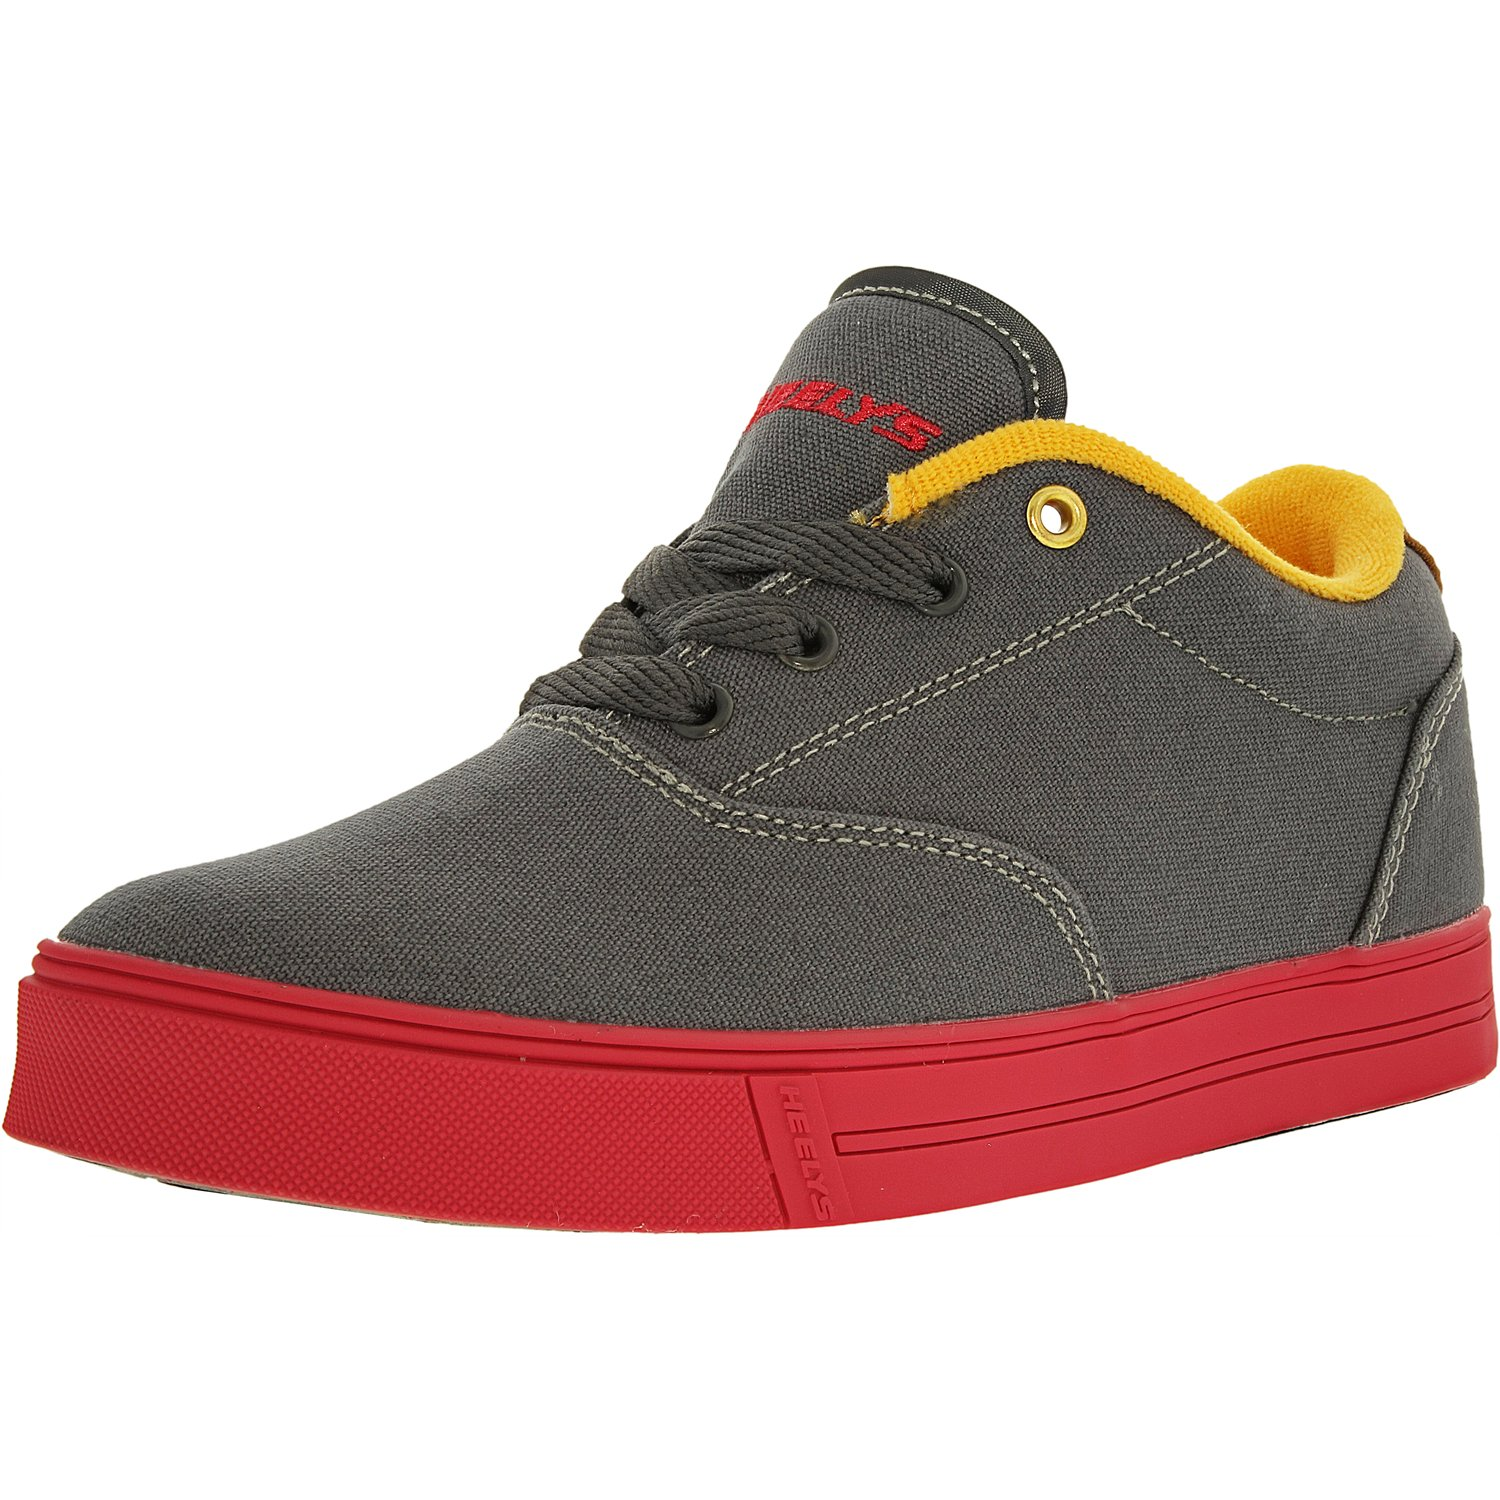 Heelys Launch Charcoal/Neon Red/Orange Ankle-High Fashion Sneaker - 3M